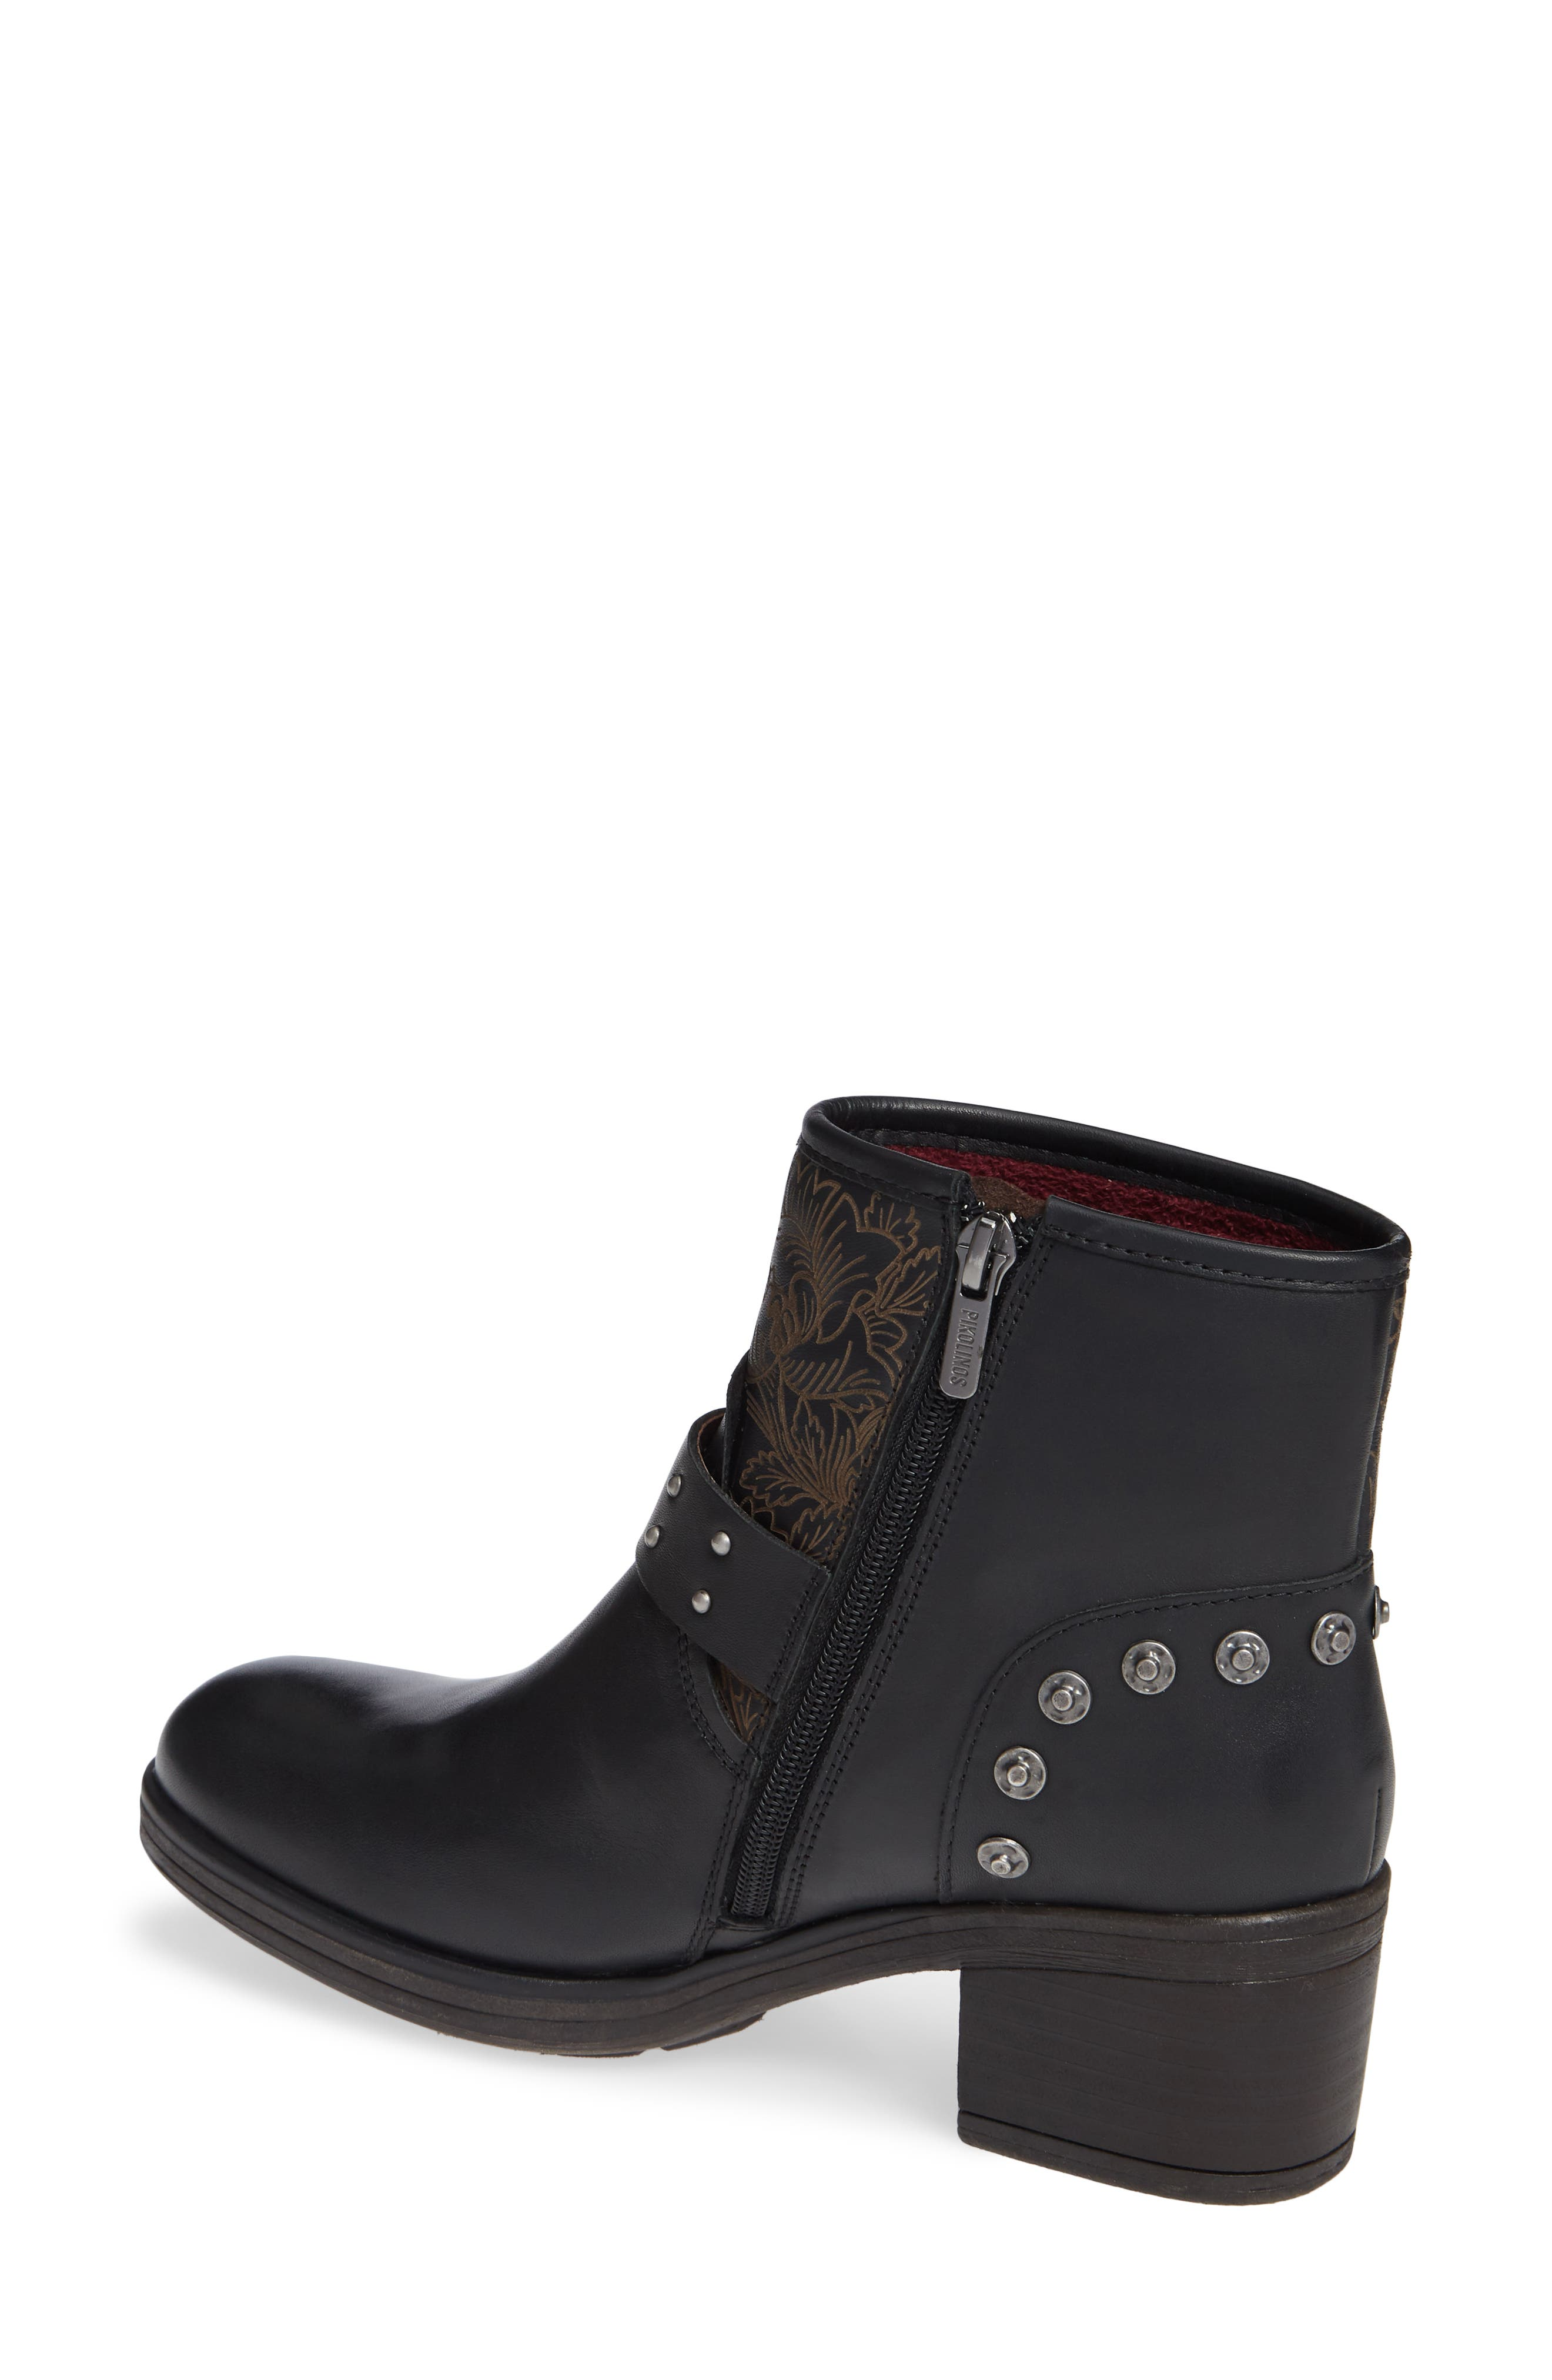 Lyon Embroidered Engineer Bootie,                             Alternate thumbnail 2, color,                             BLACK LEATHER